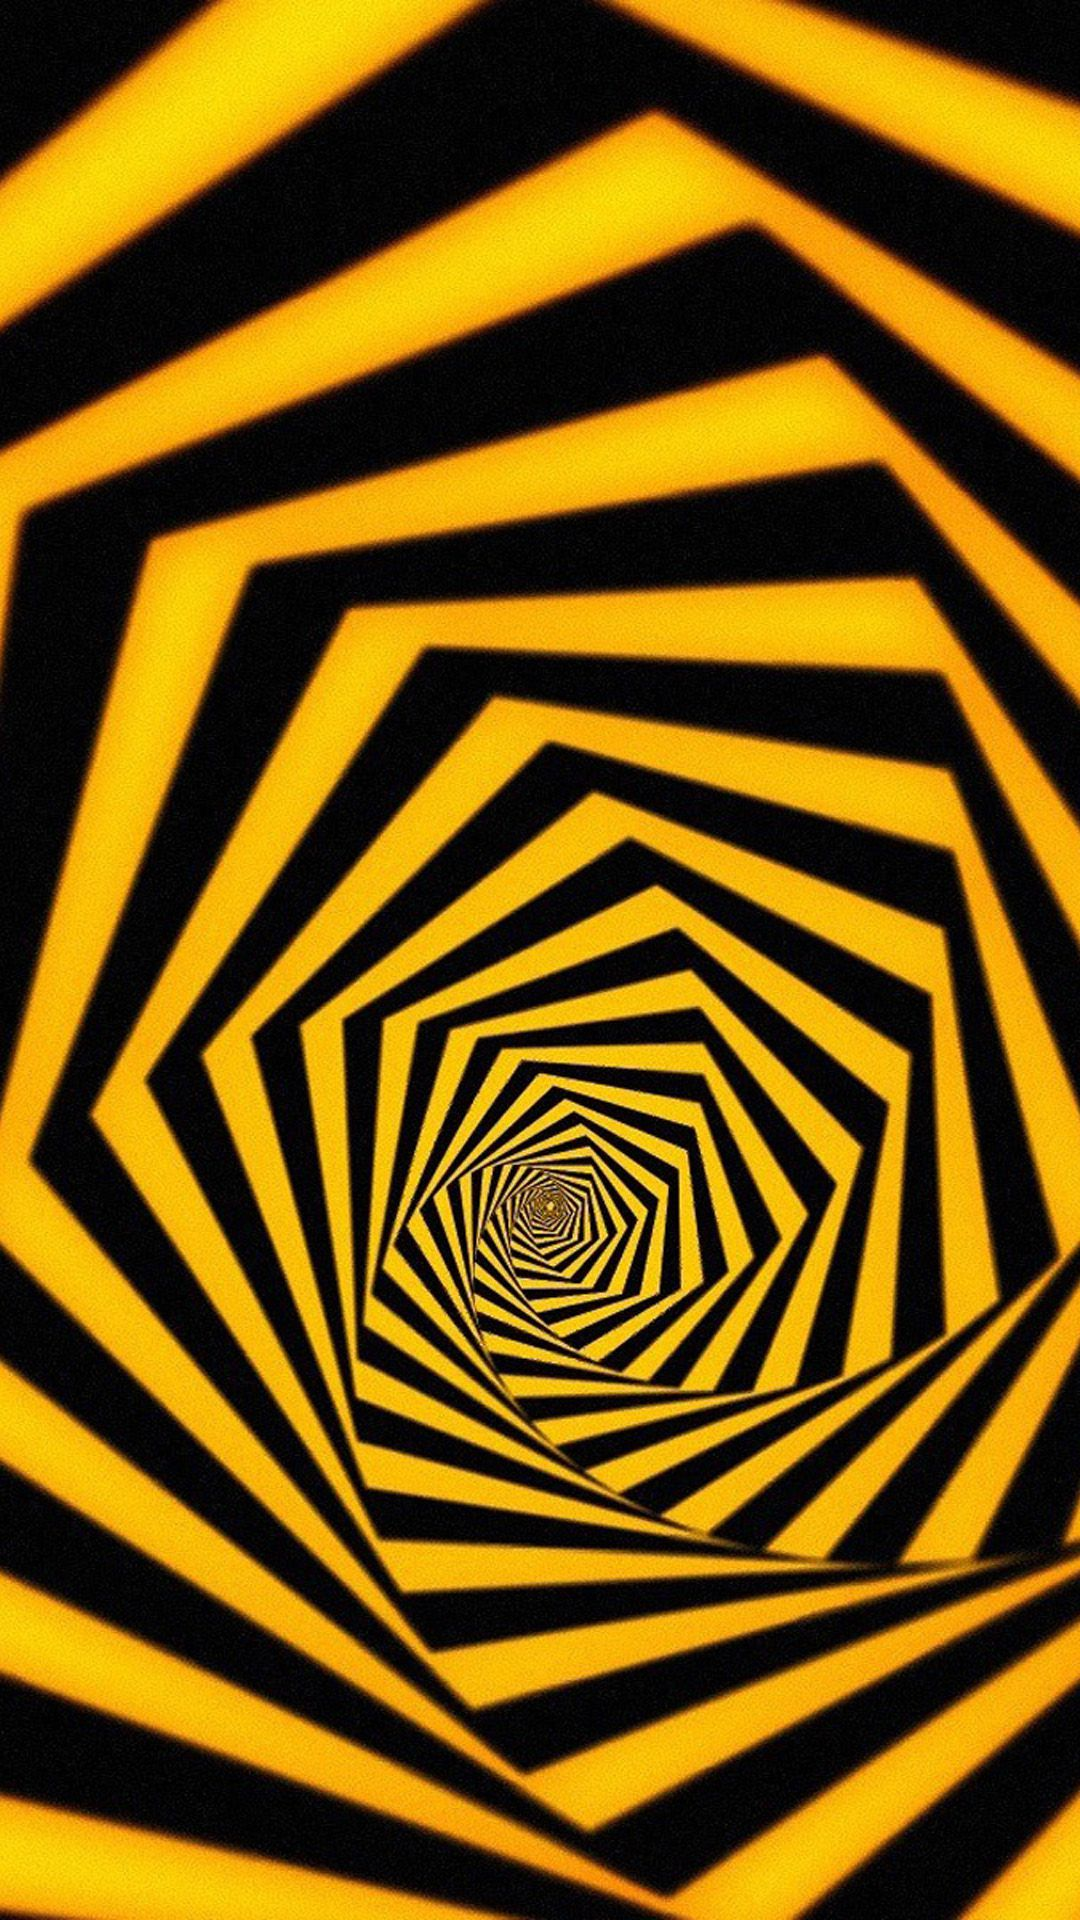 Unduh 6500 Koleksi Wallpaper Iphone Black Yellow Foto HD Gratid